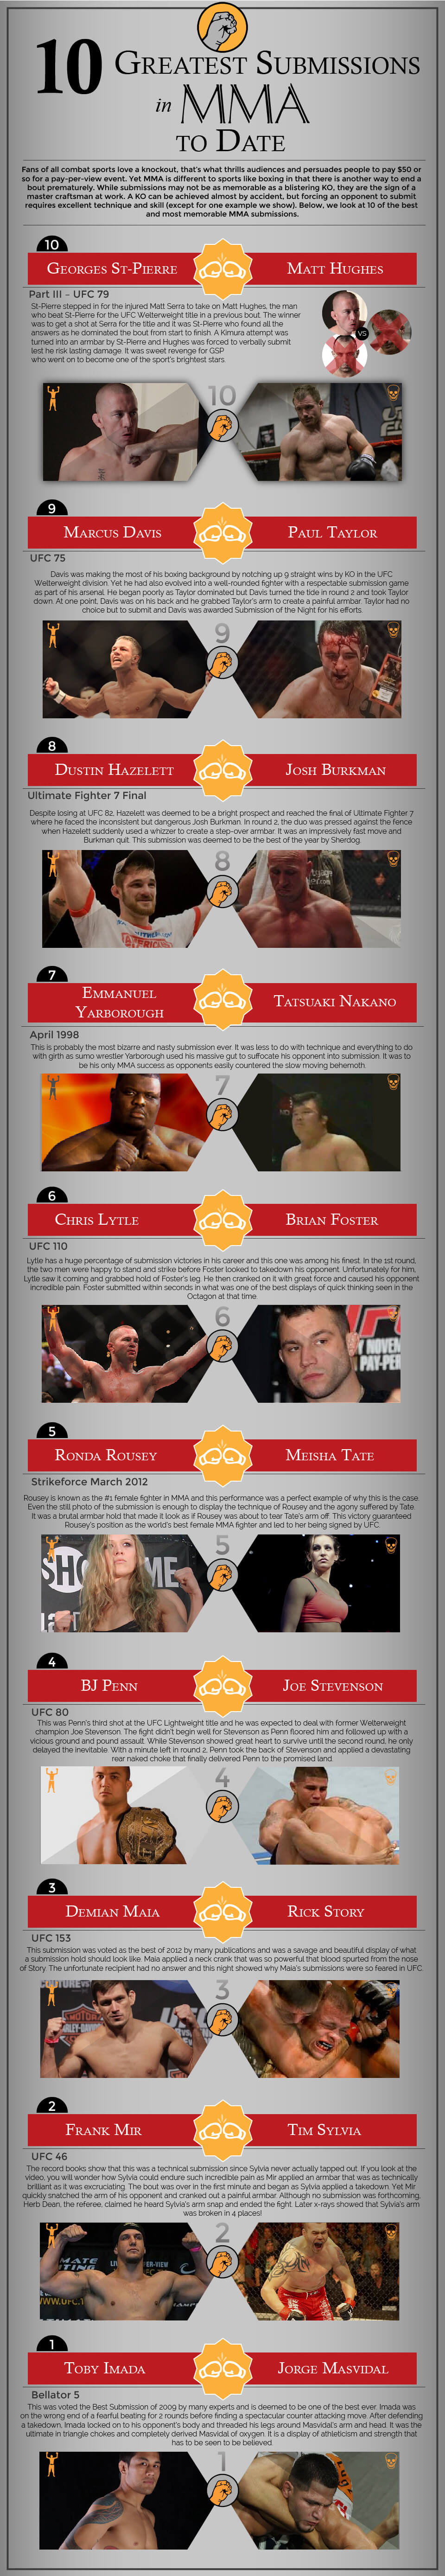 10-greatest-submissions-in-mma-to-date-infographic